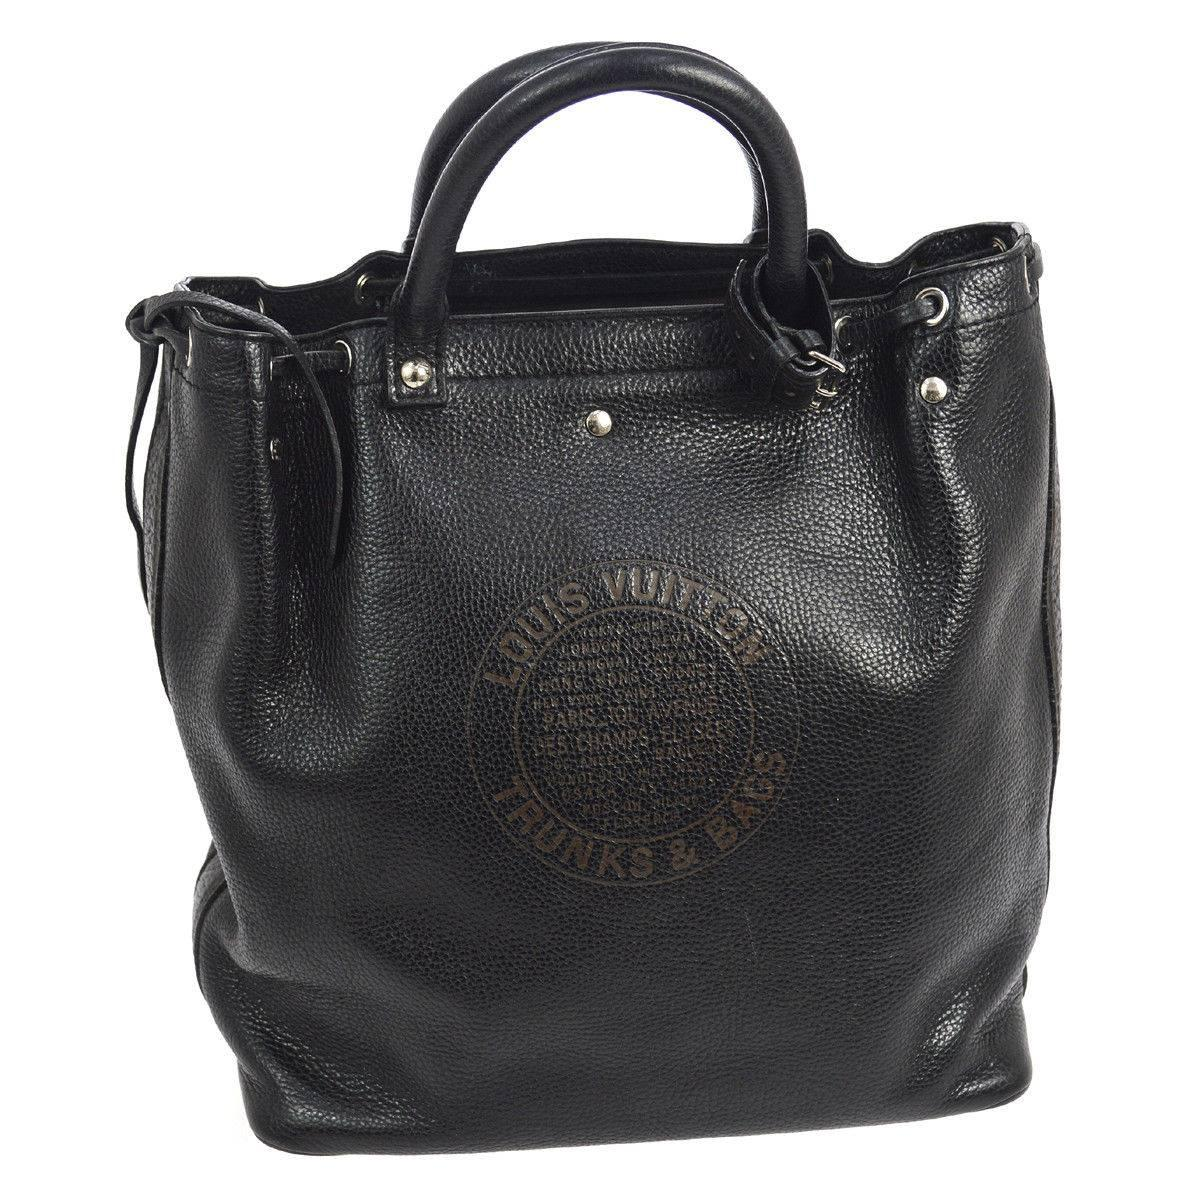 Louis Vuitton Black Leather Mens And Womens Carryall Travel Tote Bag SFvZEoRHU6